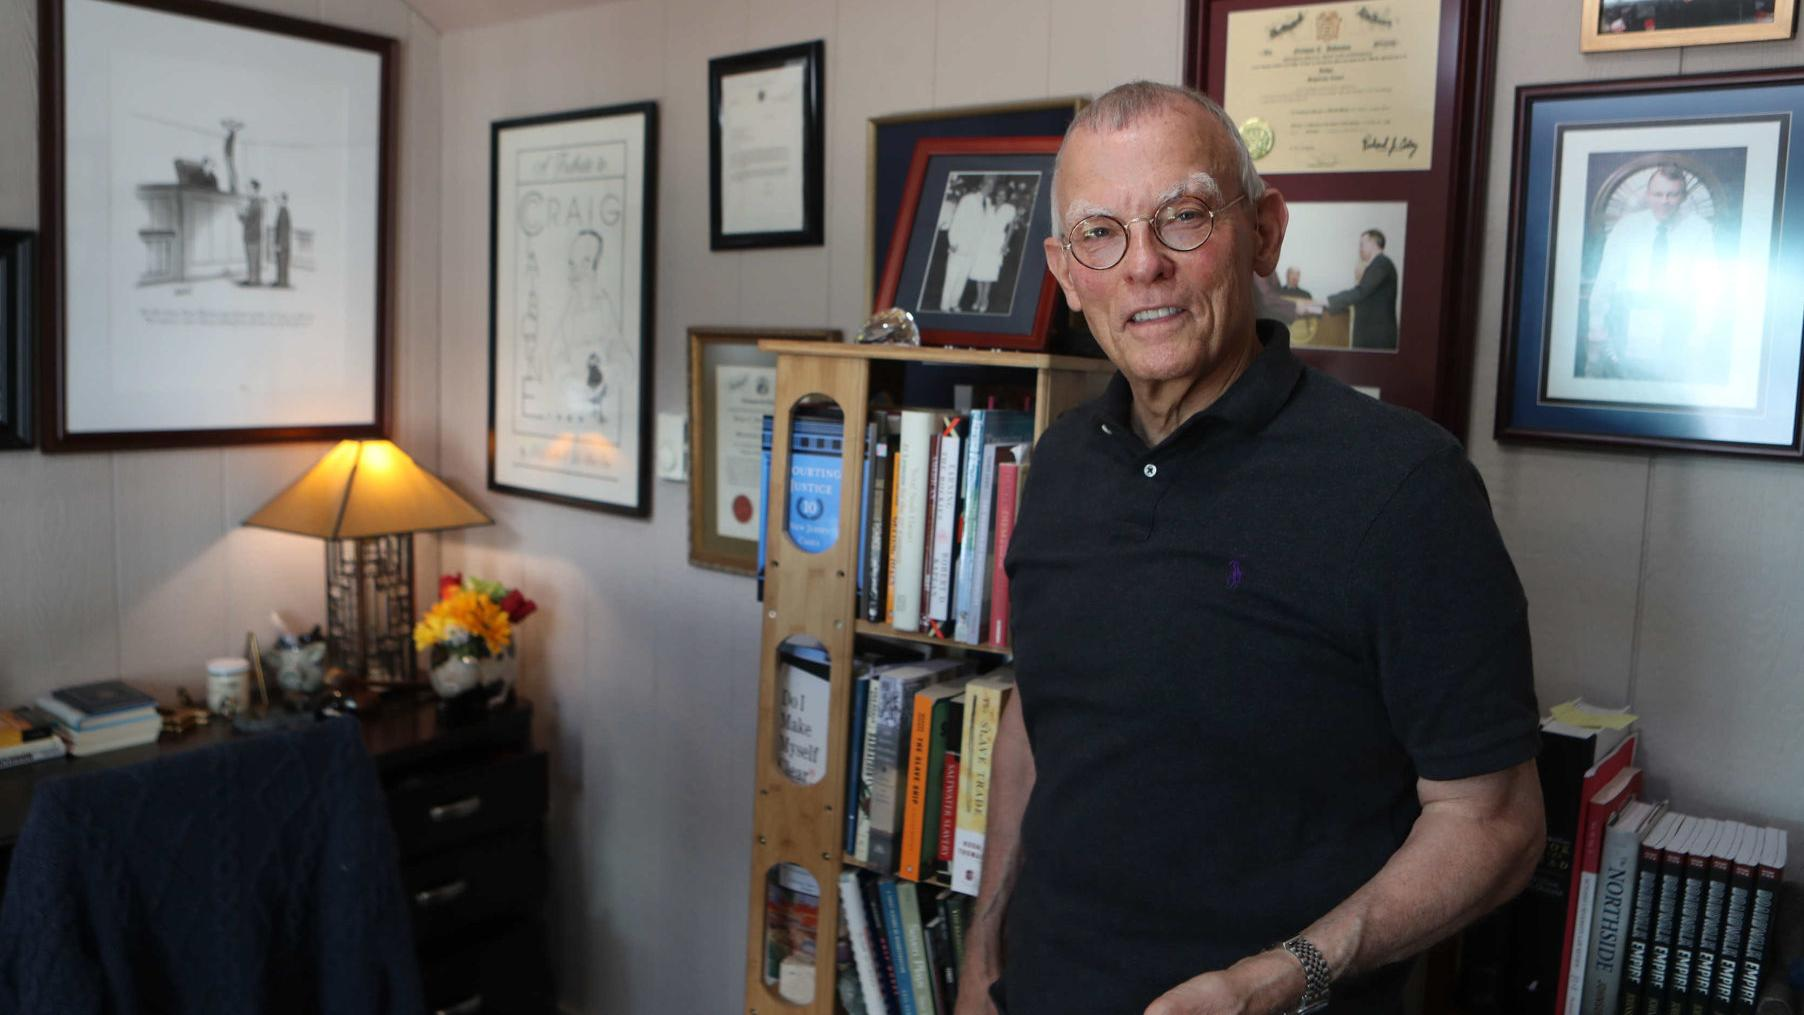 Nelson Johnson, author of Boardwalk Empire, turns attention to Clarence Darrow